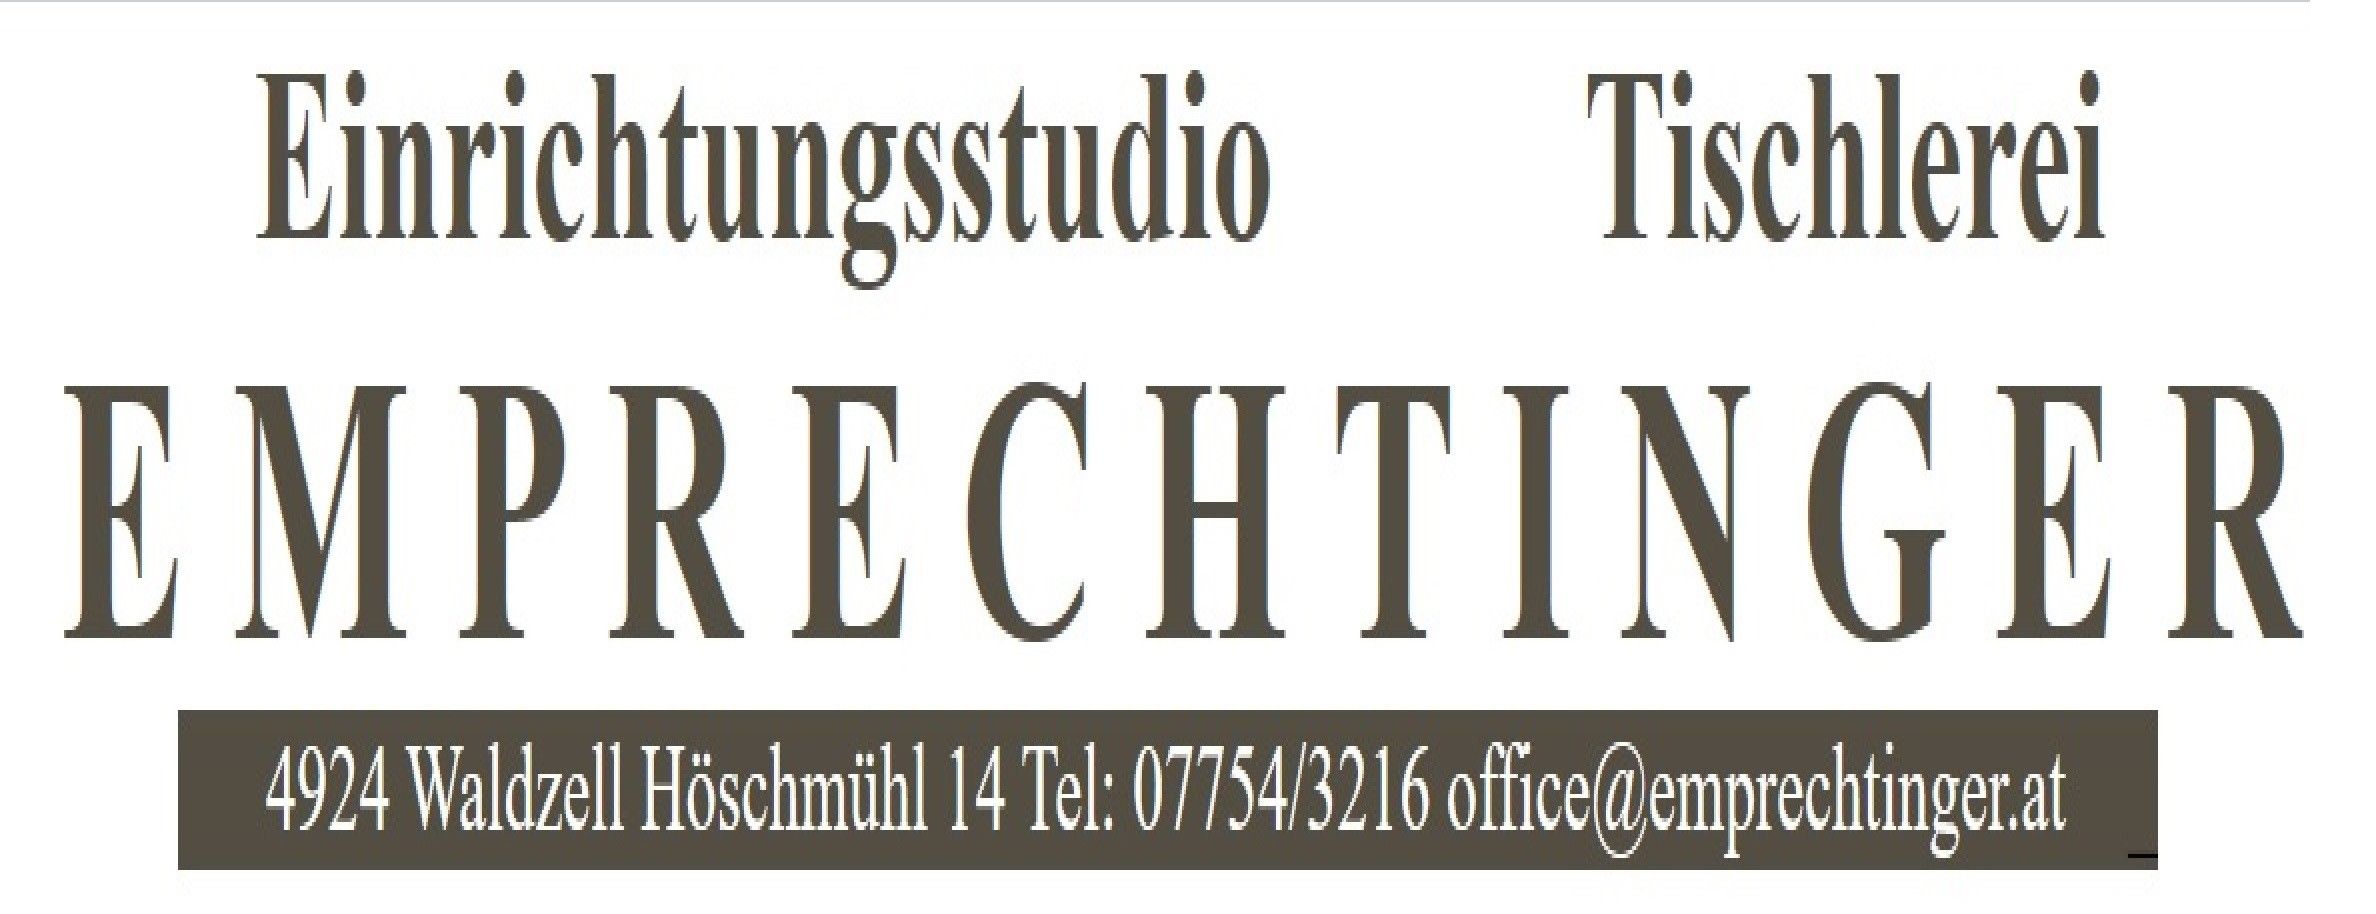 www.emprechtinger.eu, www.emprechtinger.at